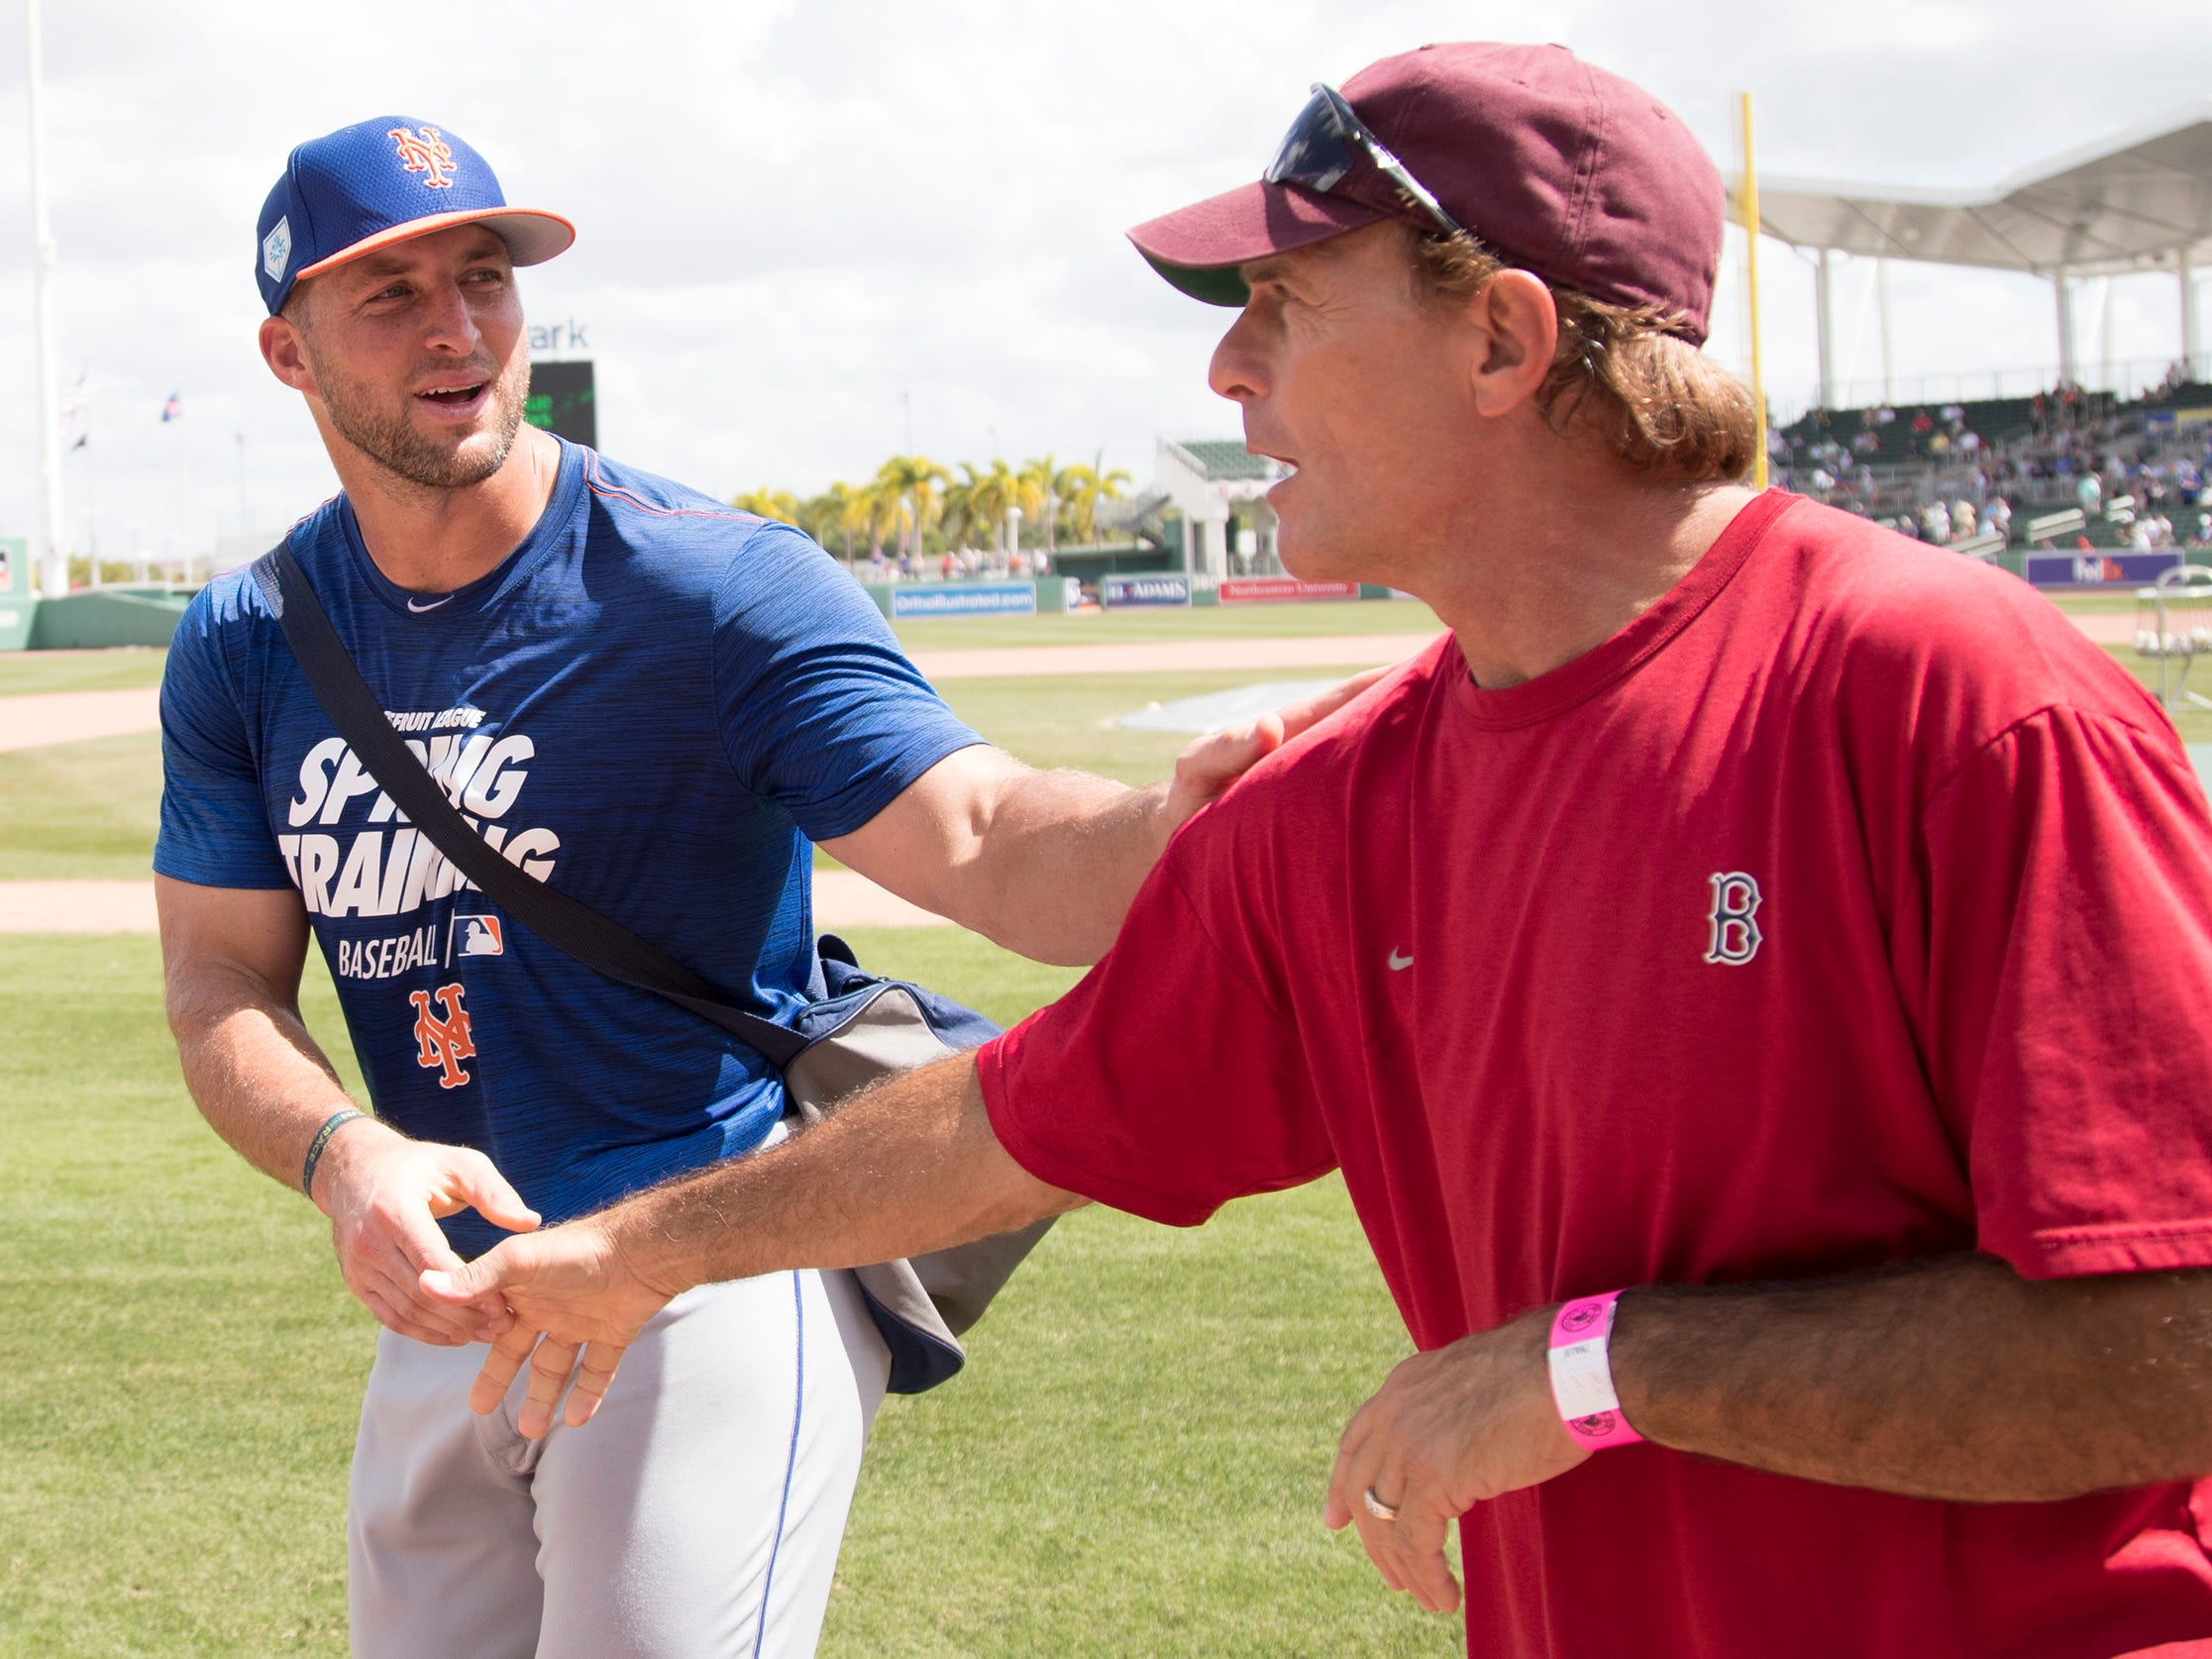 New York Mets' Tim Tebow meets fans before playing the Boston Red Sox on Saturday at JetBlue Park in Fort Myers.